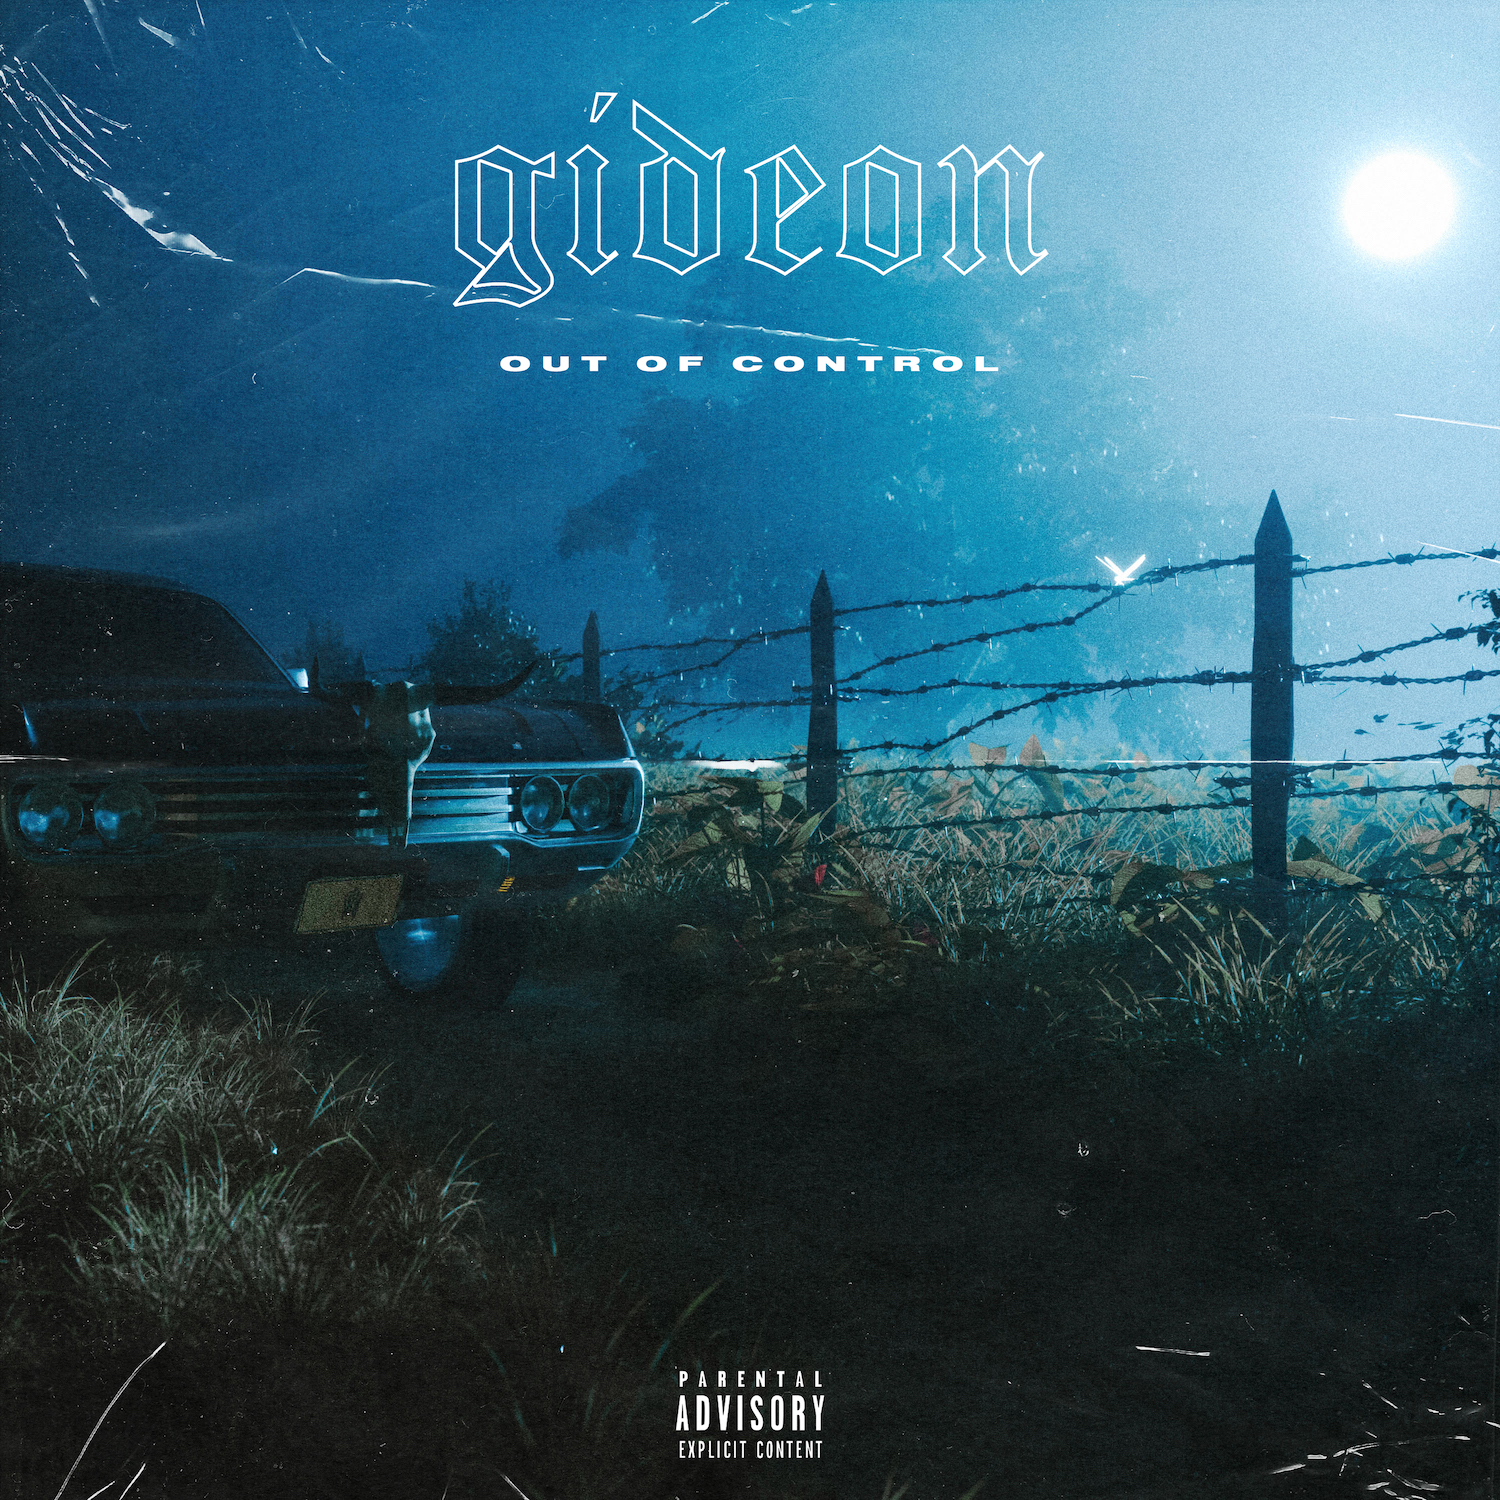 Gideon Out Of Control artwork